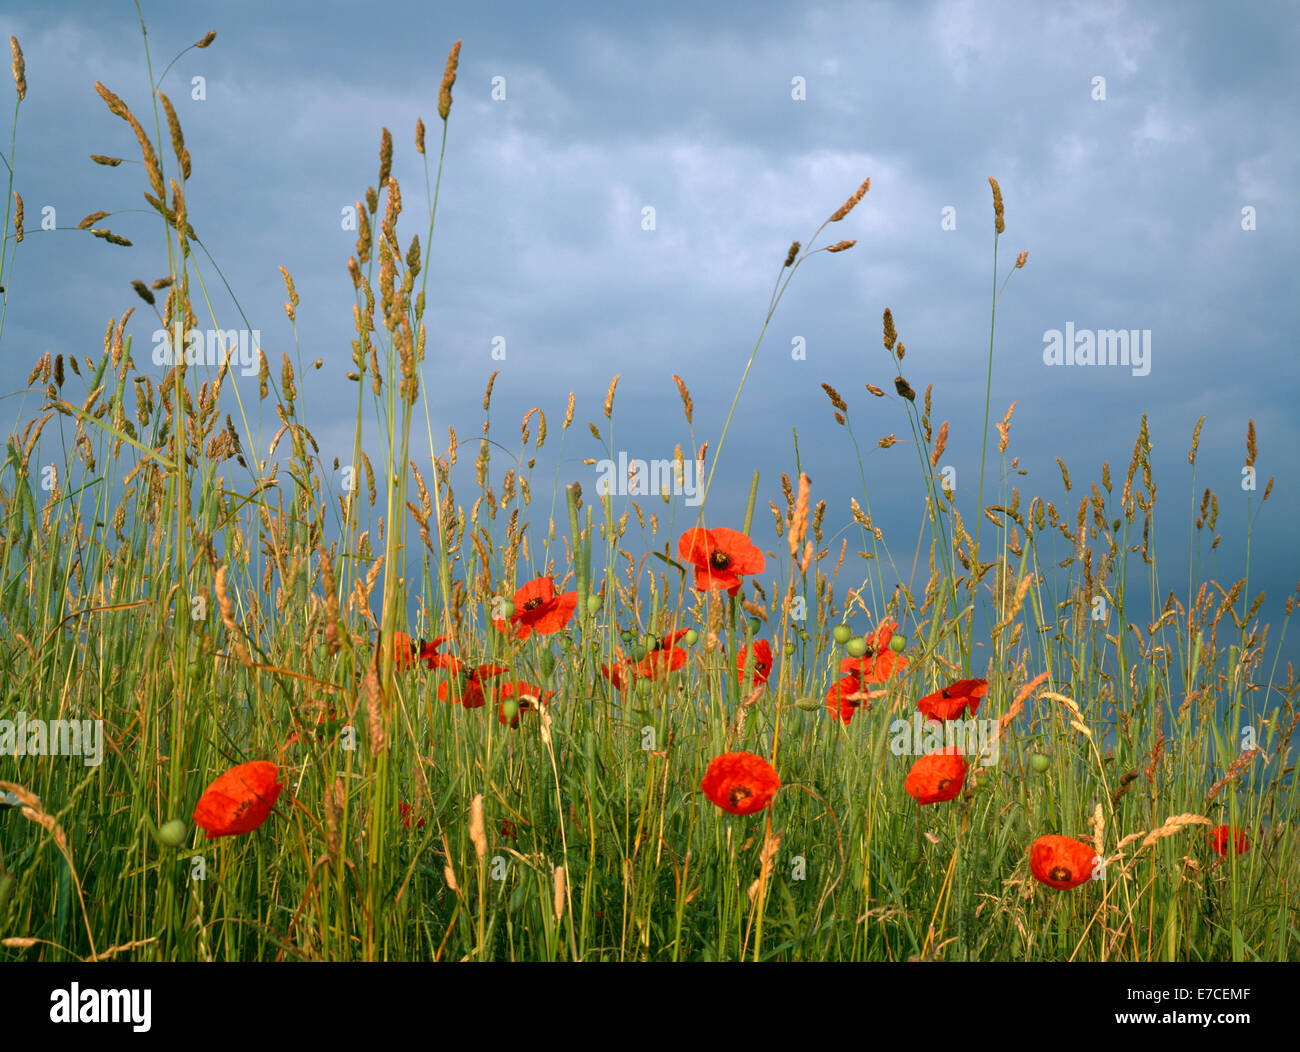 Wild Growing Grasses Stock Photos & Wild Growing Grasses Stock ...